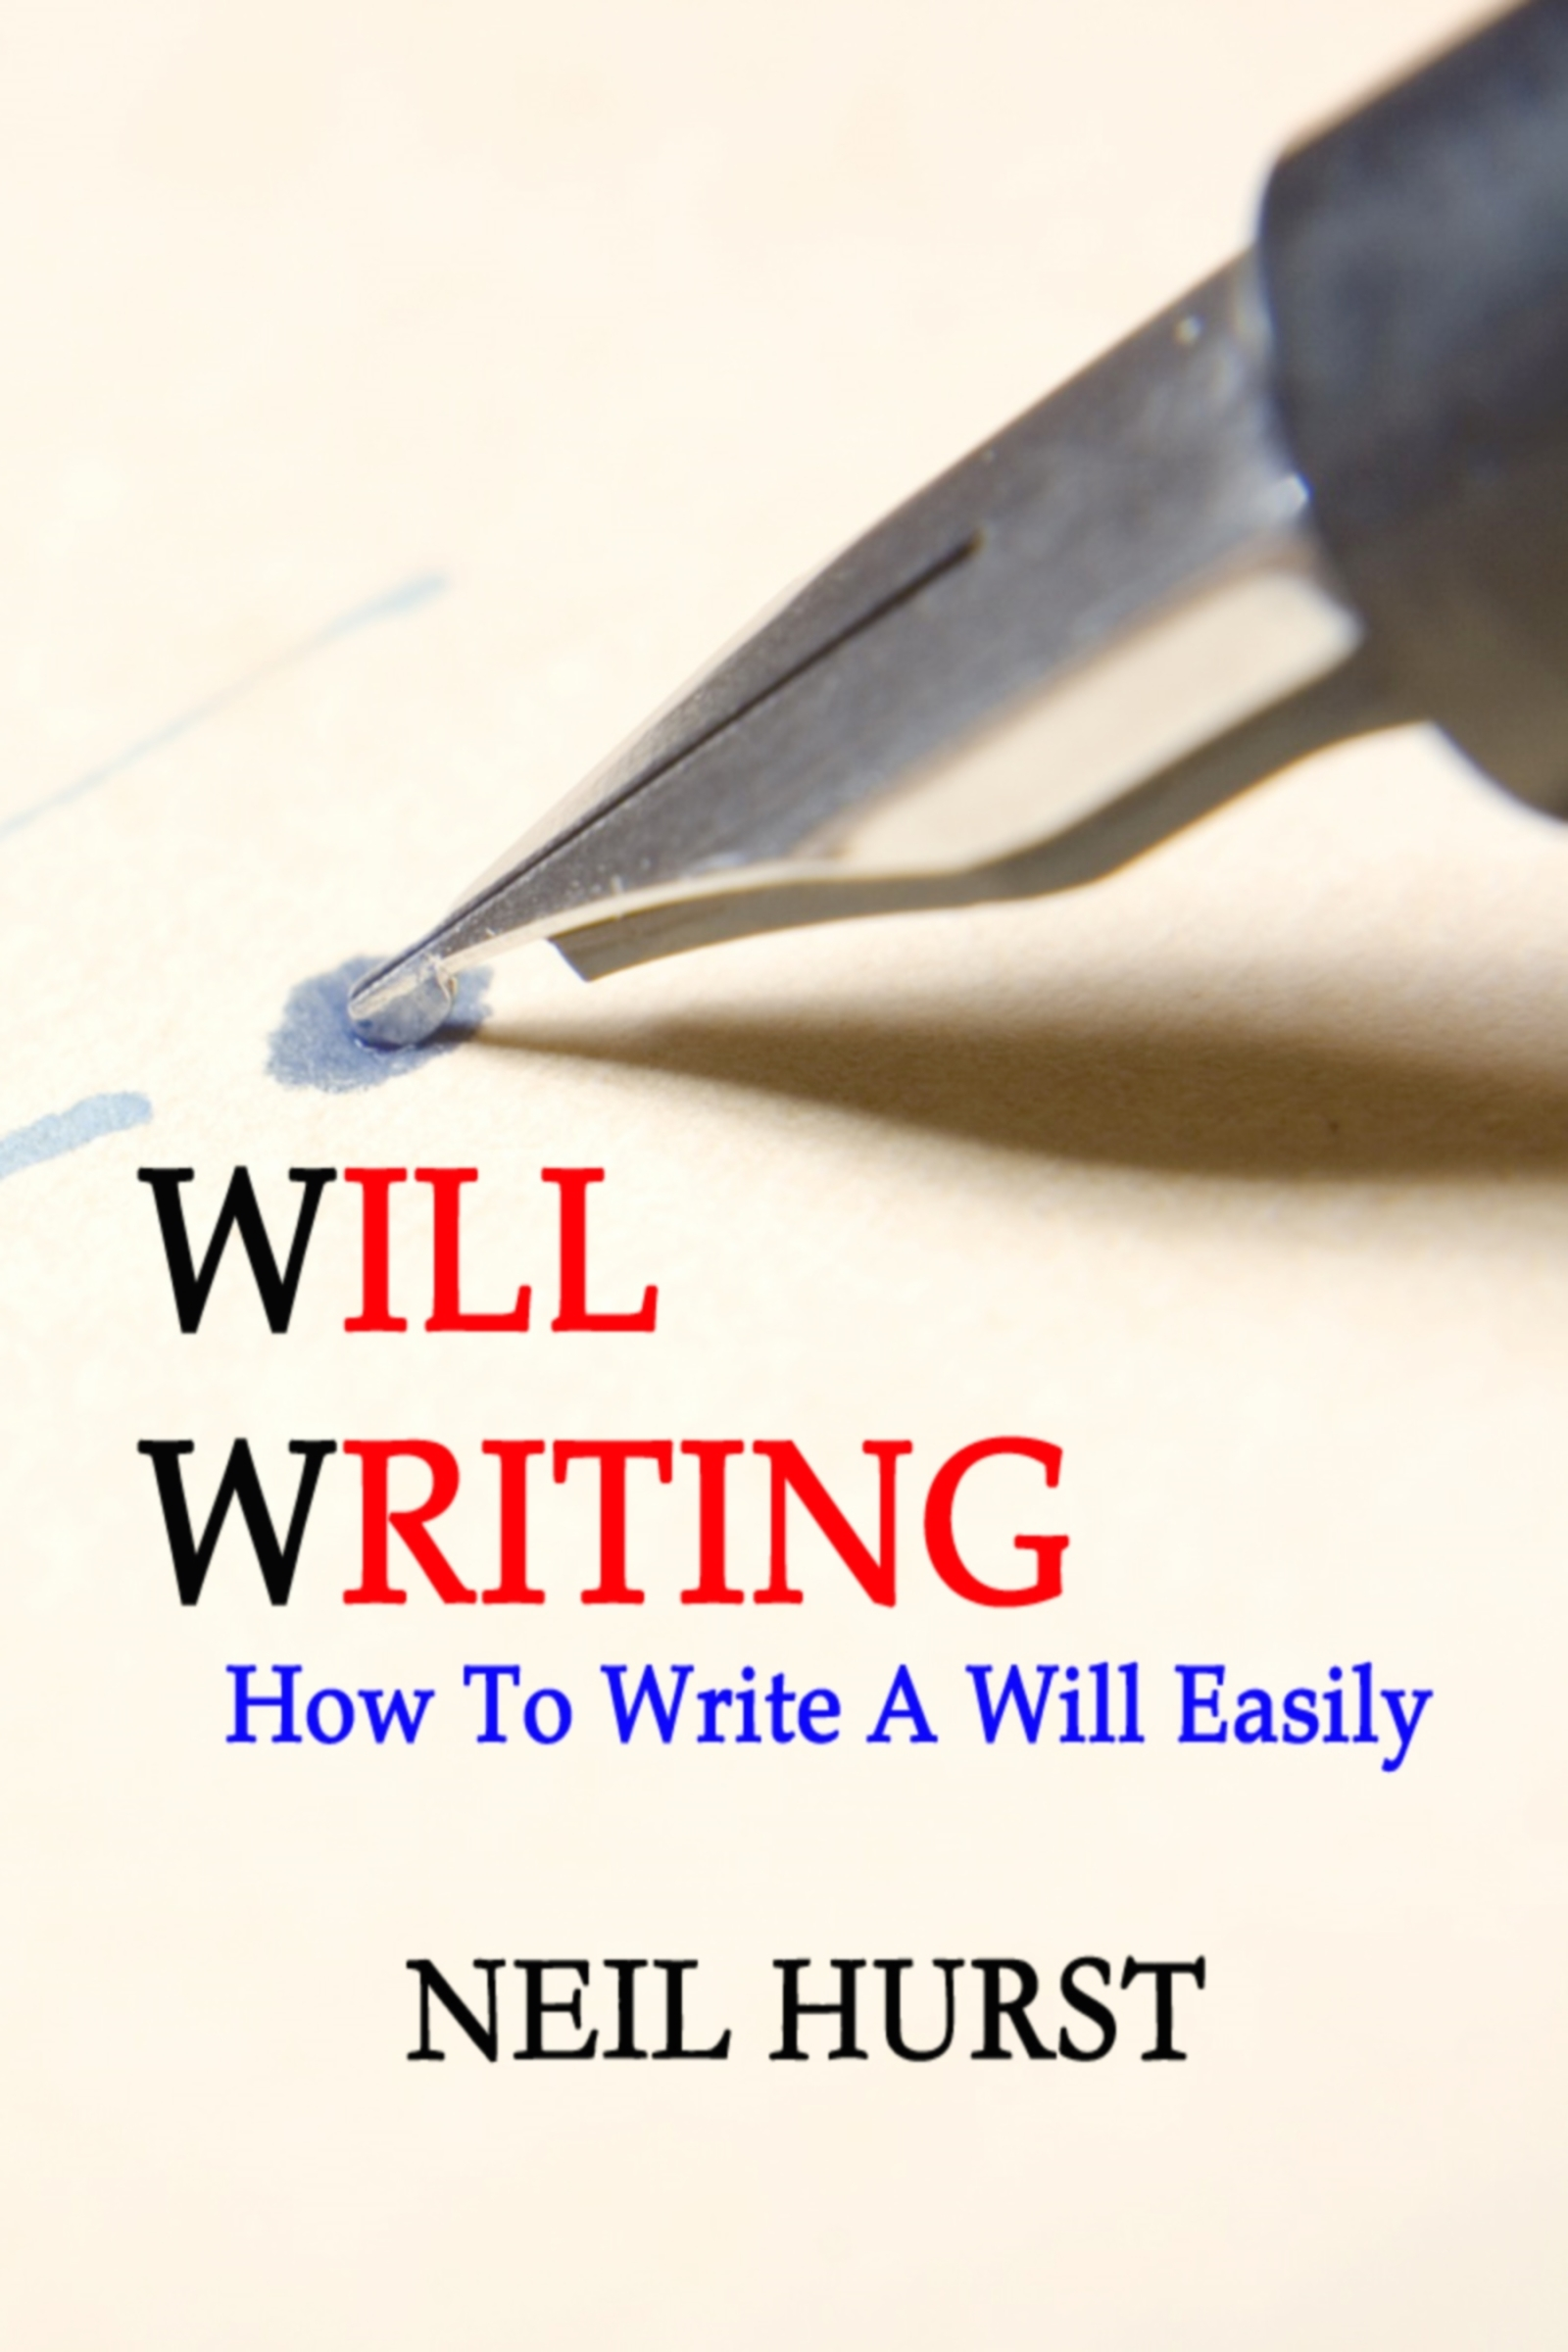 Will Writing: How To Write A Will Easily